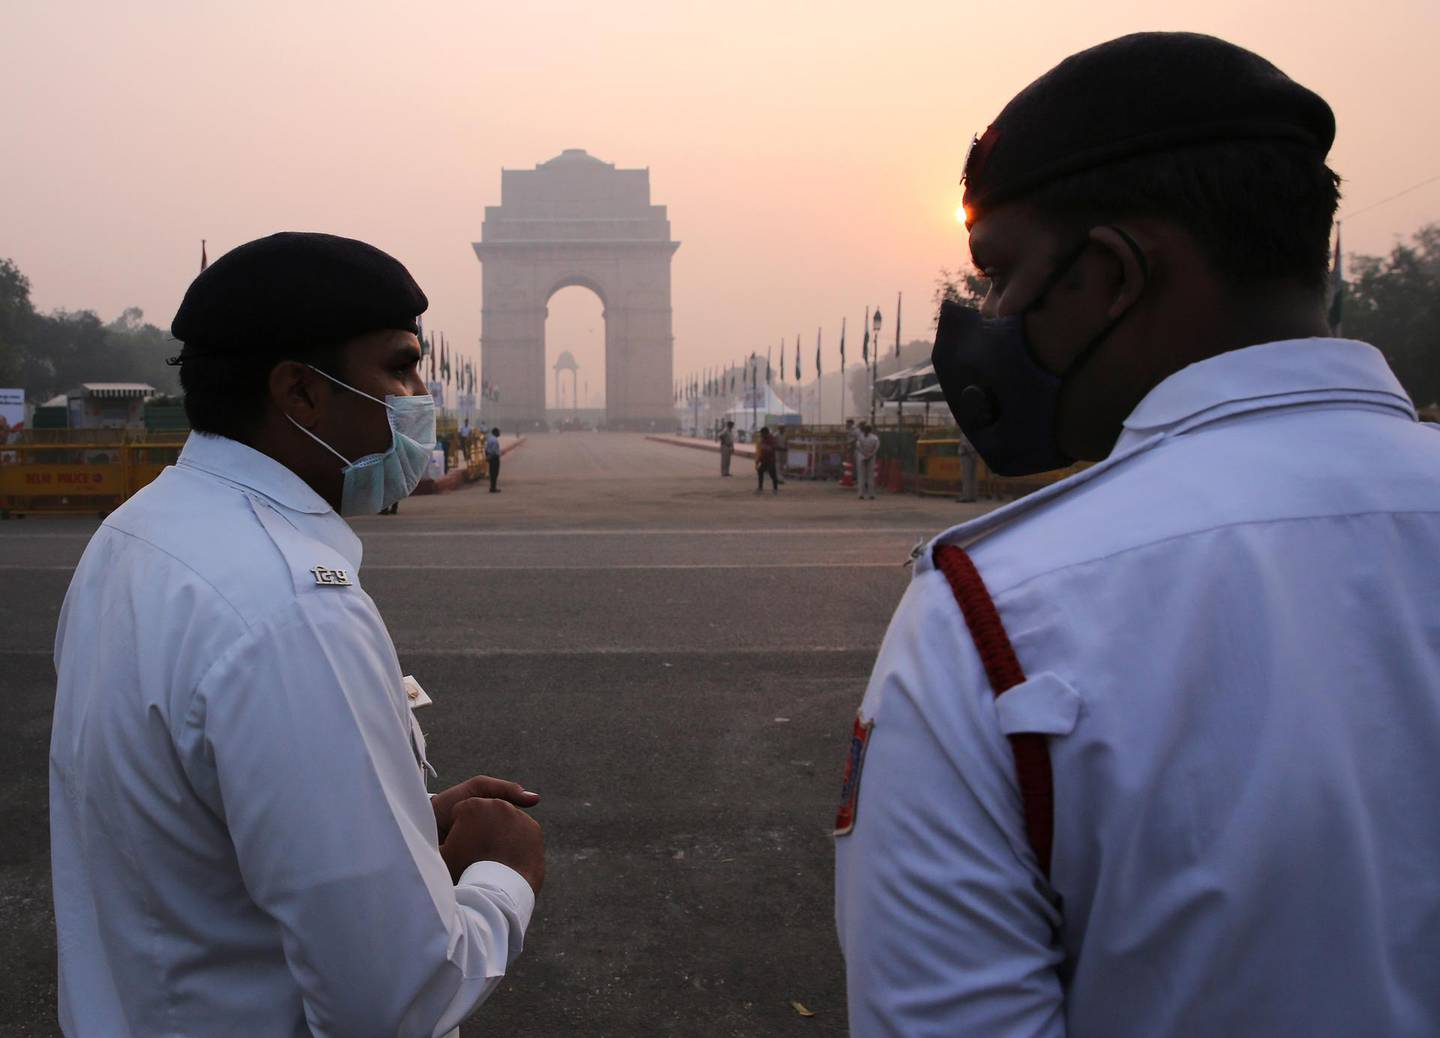 epa07132452 Indian traffic Policemen wear masks as smog pollutes the air in New Delhi, India, 31 October 2018. People in the Indian capital are struggling with air pollution as stubble burning in adjoining states of Punjab and Haryana, said to be a contributing factor for increasing air pollution.  EPA/RAJAT GUPTA